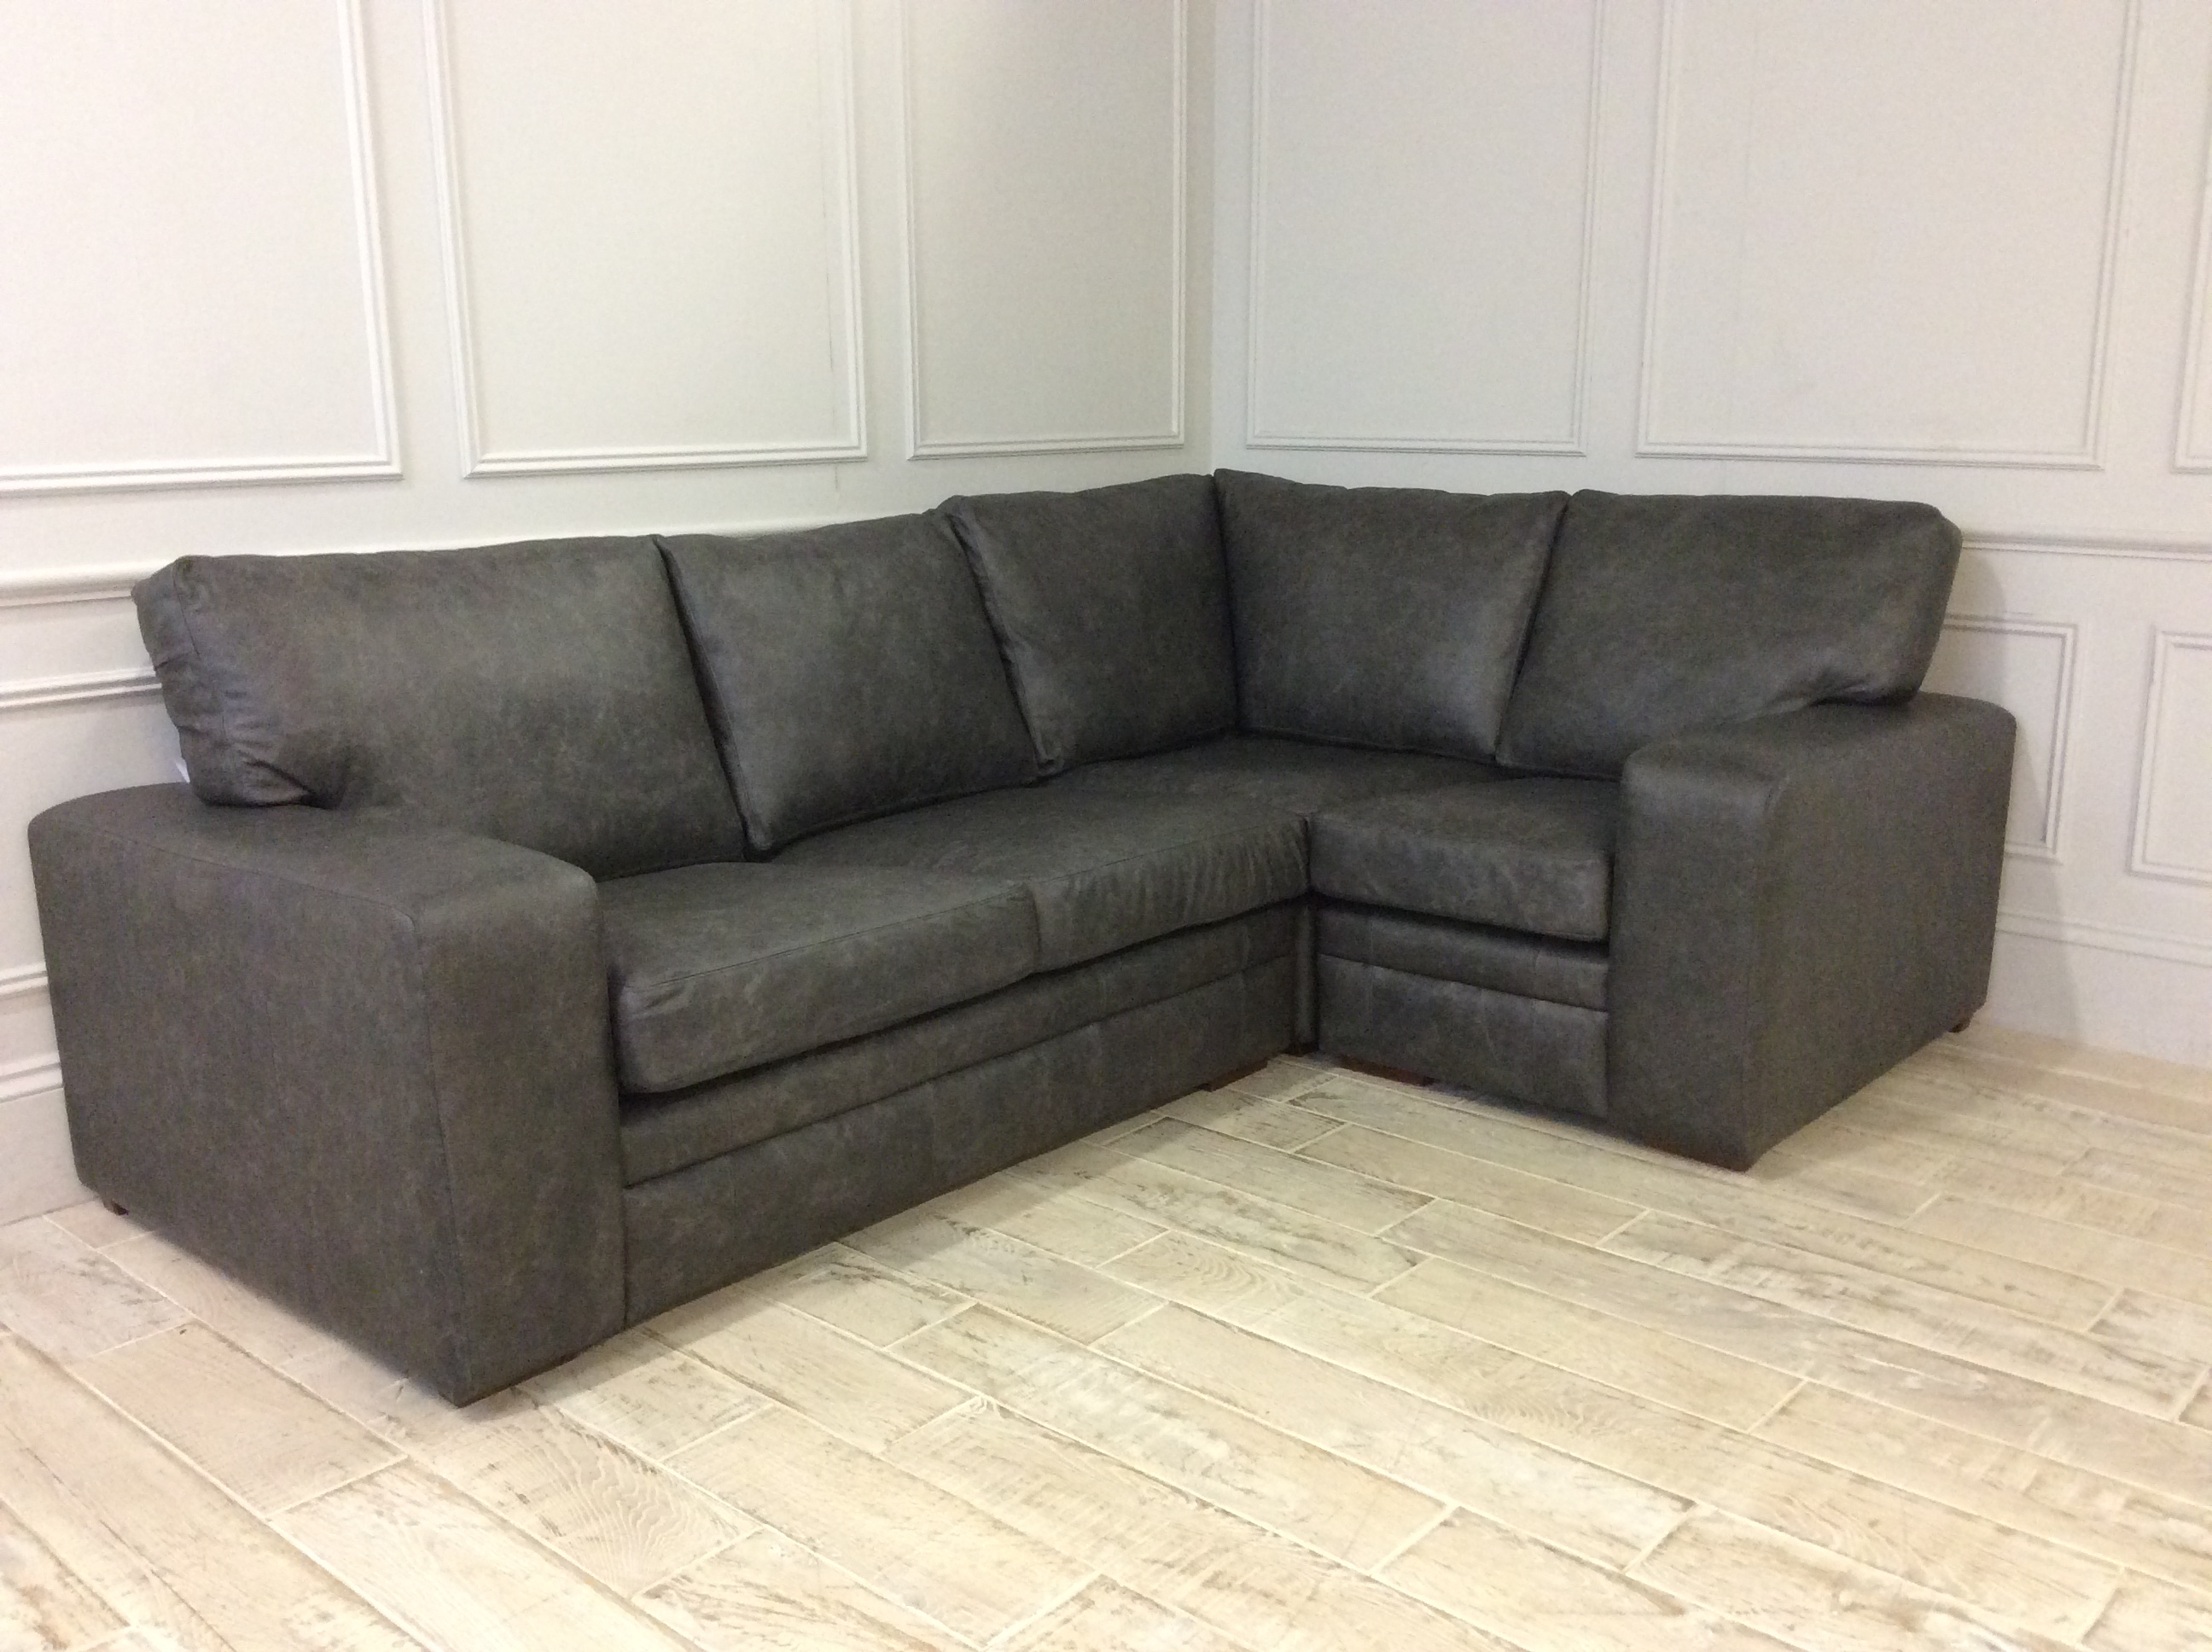 Sloane 2.5 x 1 Seater Corner Sofa Right Hand Facing in Family Friendly Industrial Leather Armour